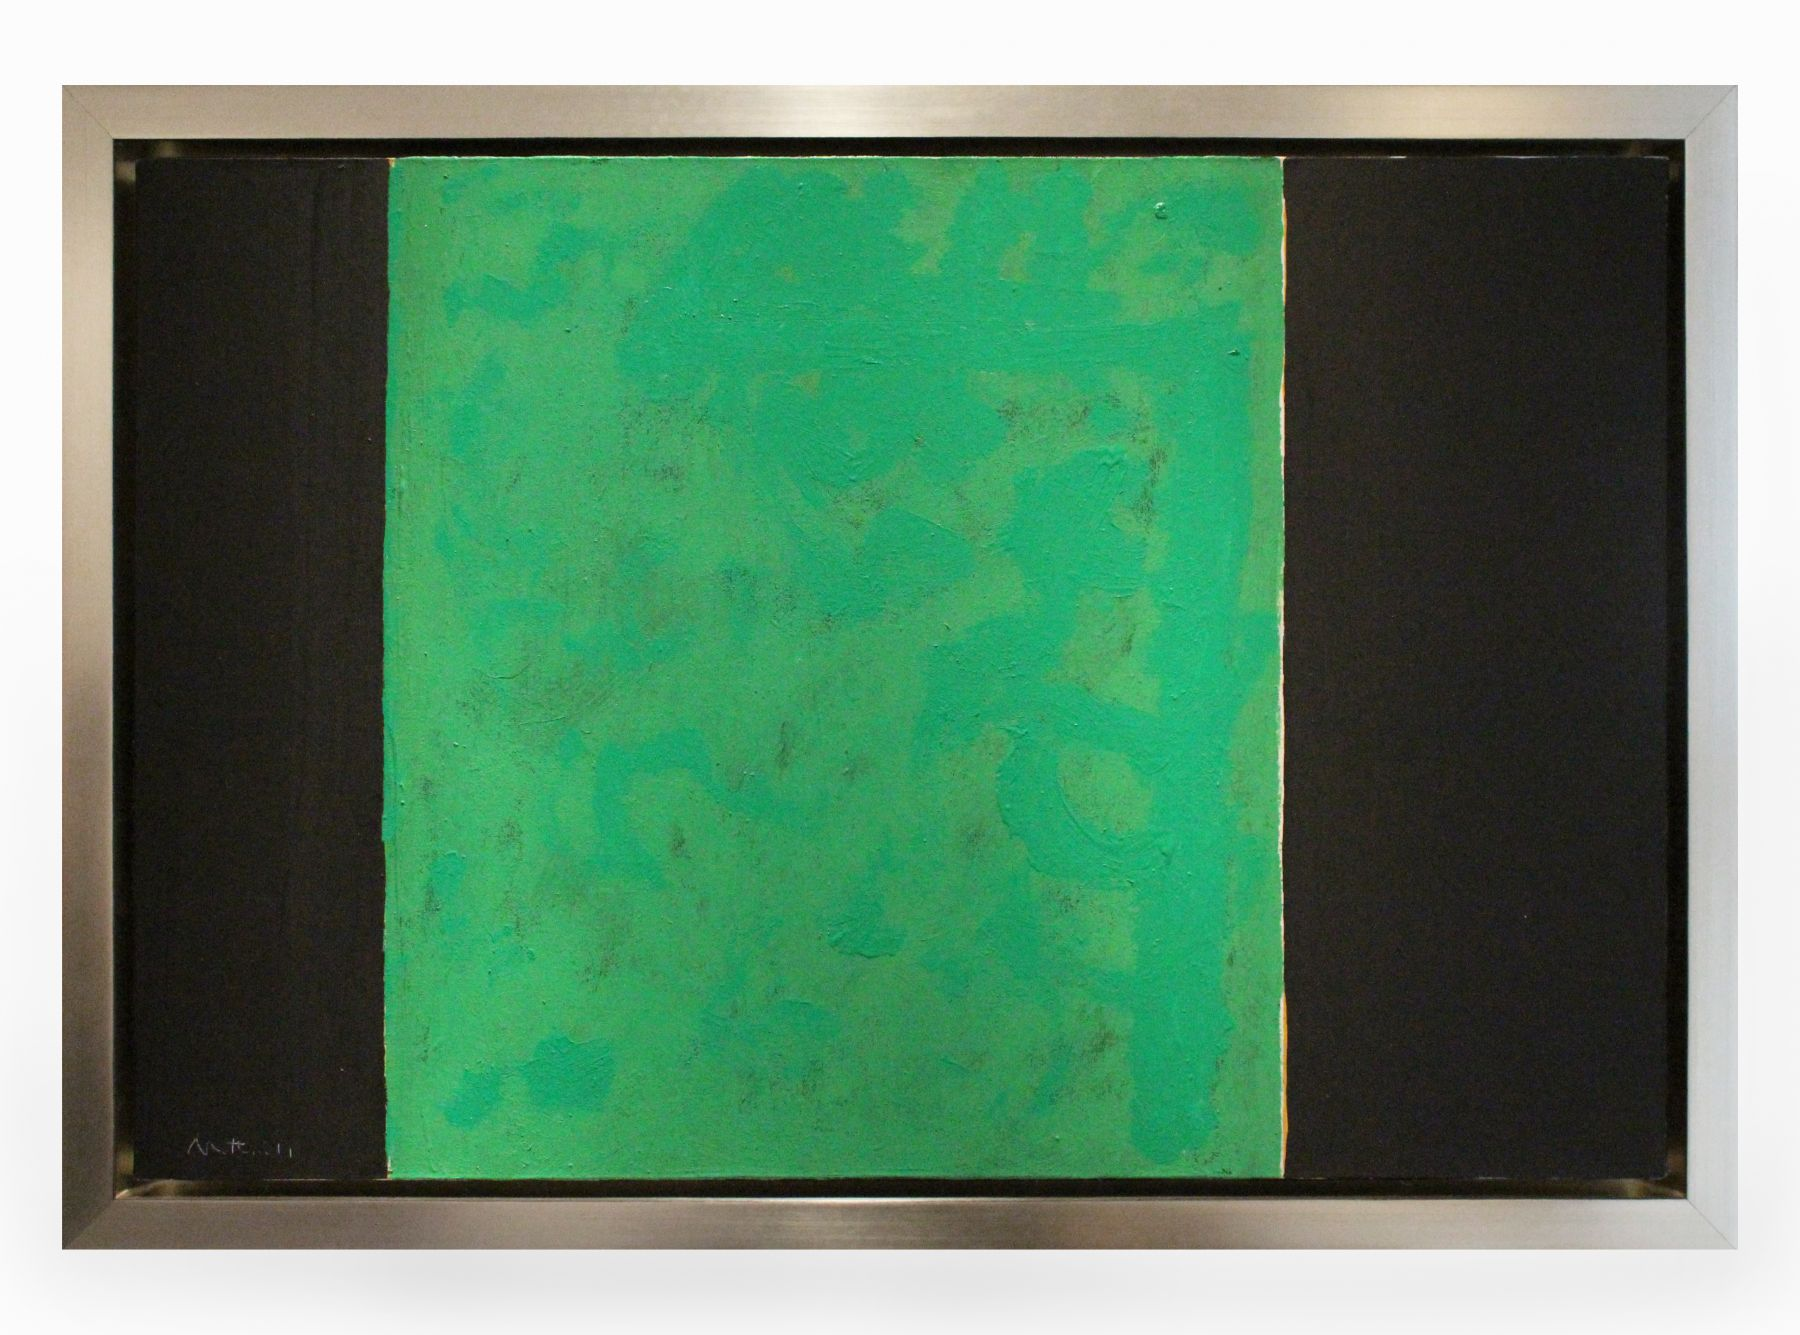 Robert Motherwell, Open No. 57: Green and Black, 1969-70